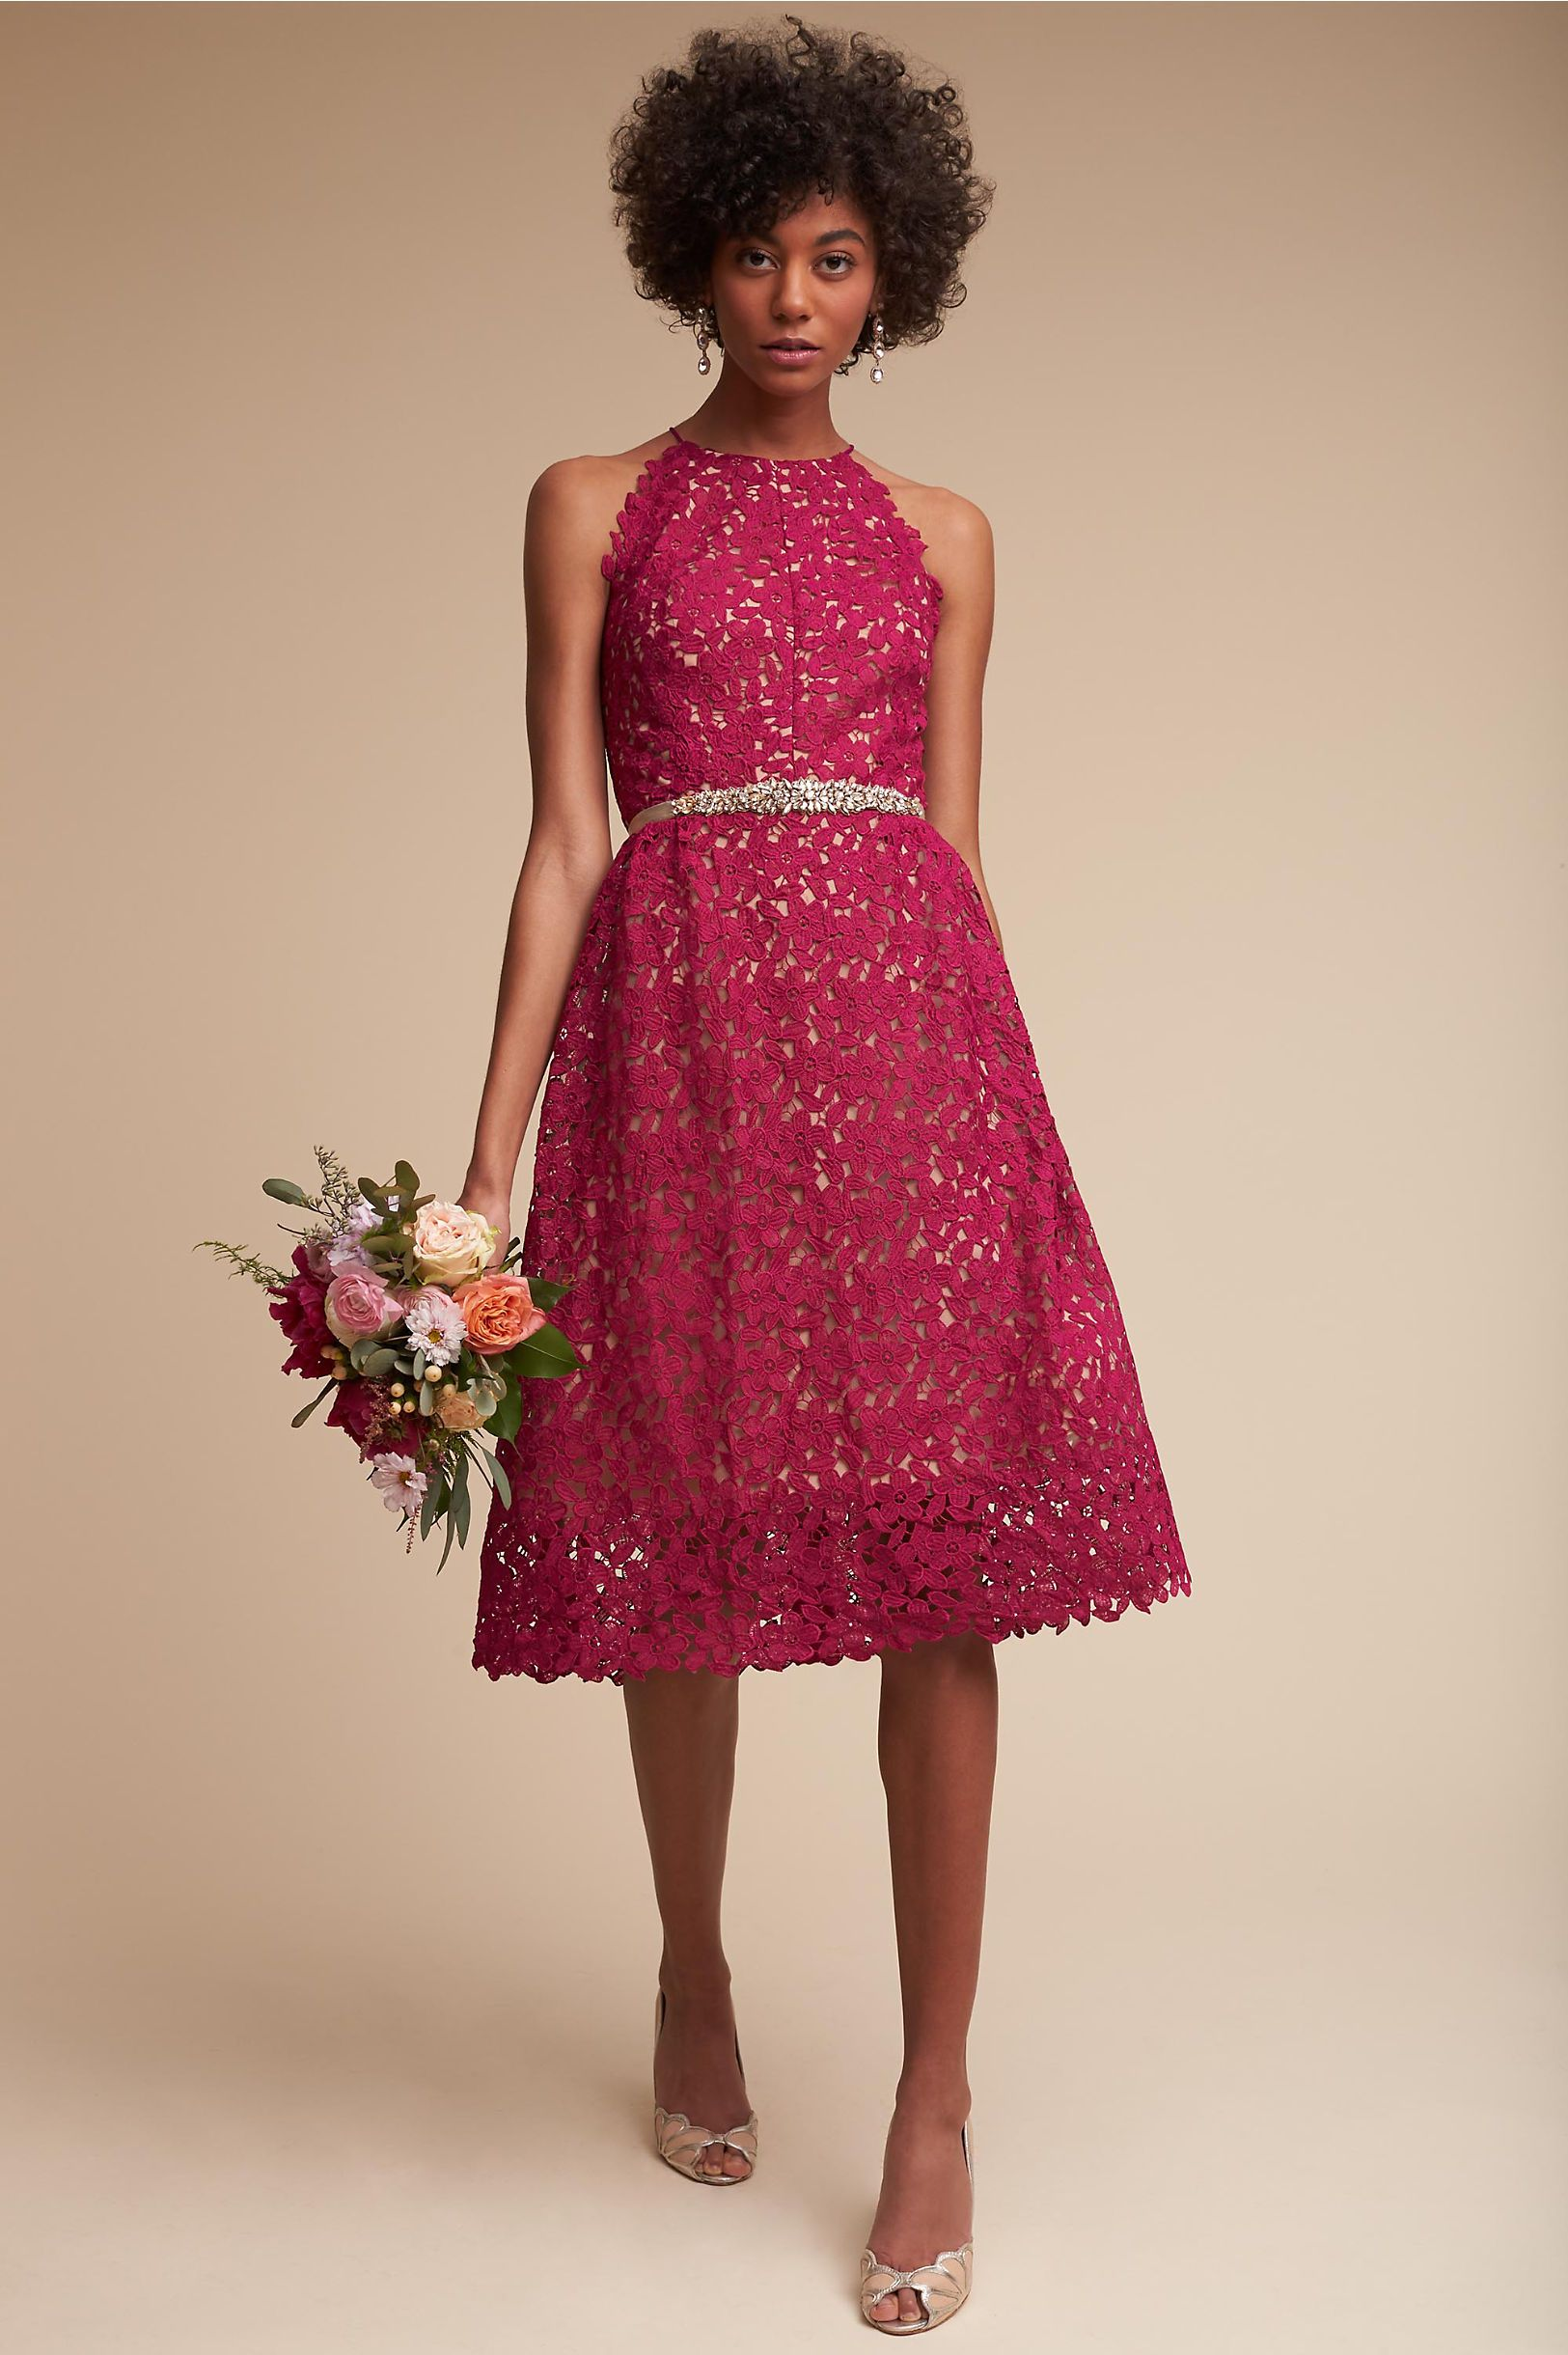 Bhldnus hitherto james dress in fuschia bridal parties